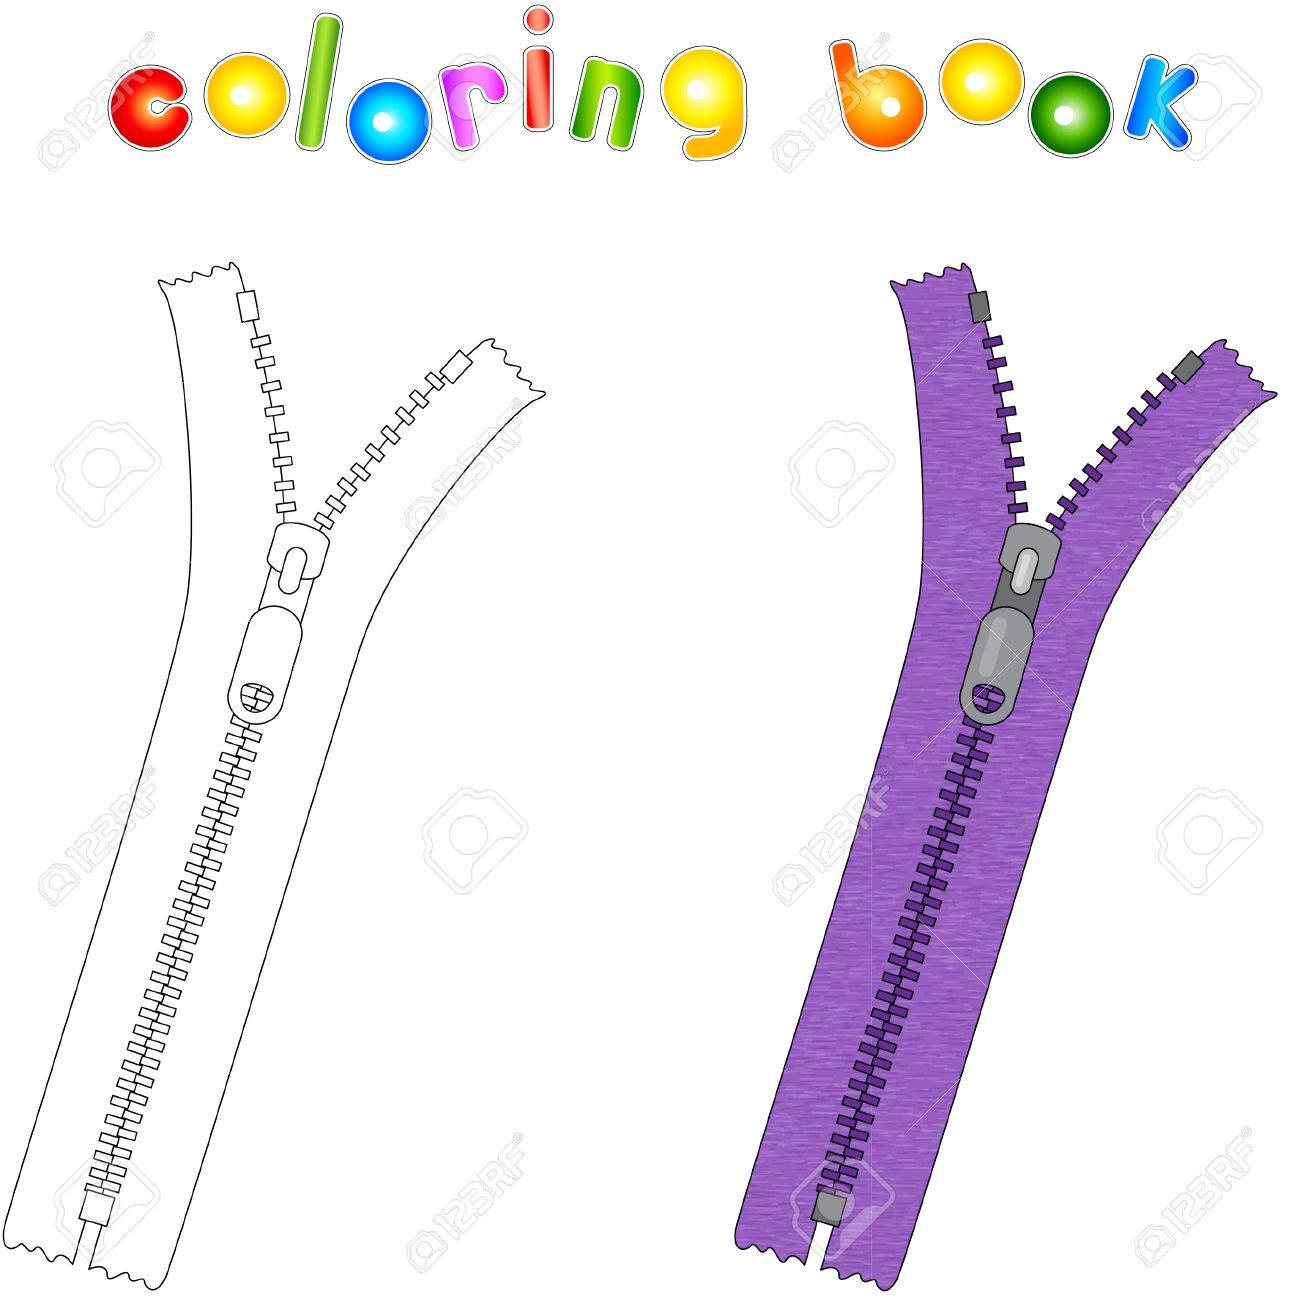 Cartoon Zipper Coloring Book For Kids Royalty Free Cliparts